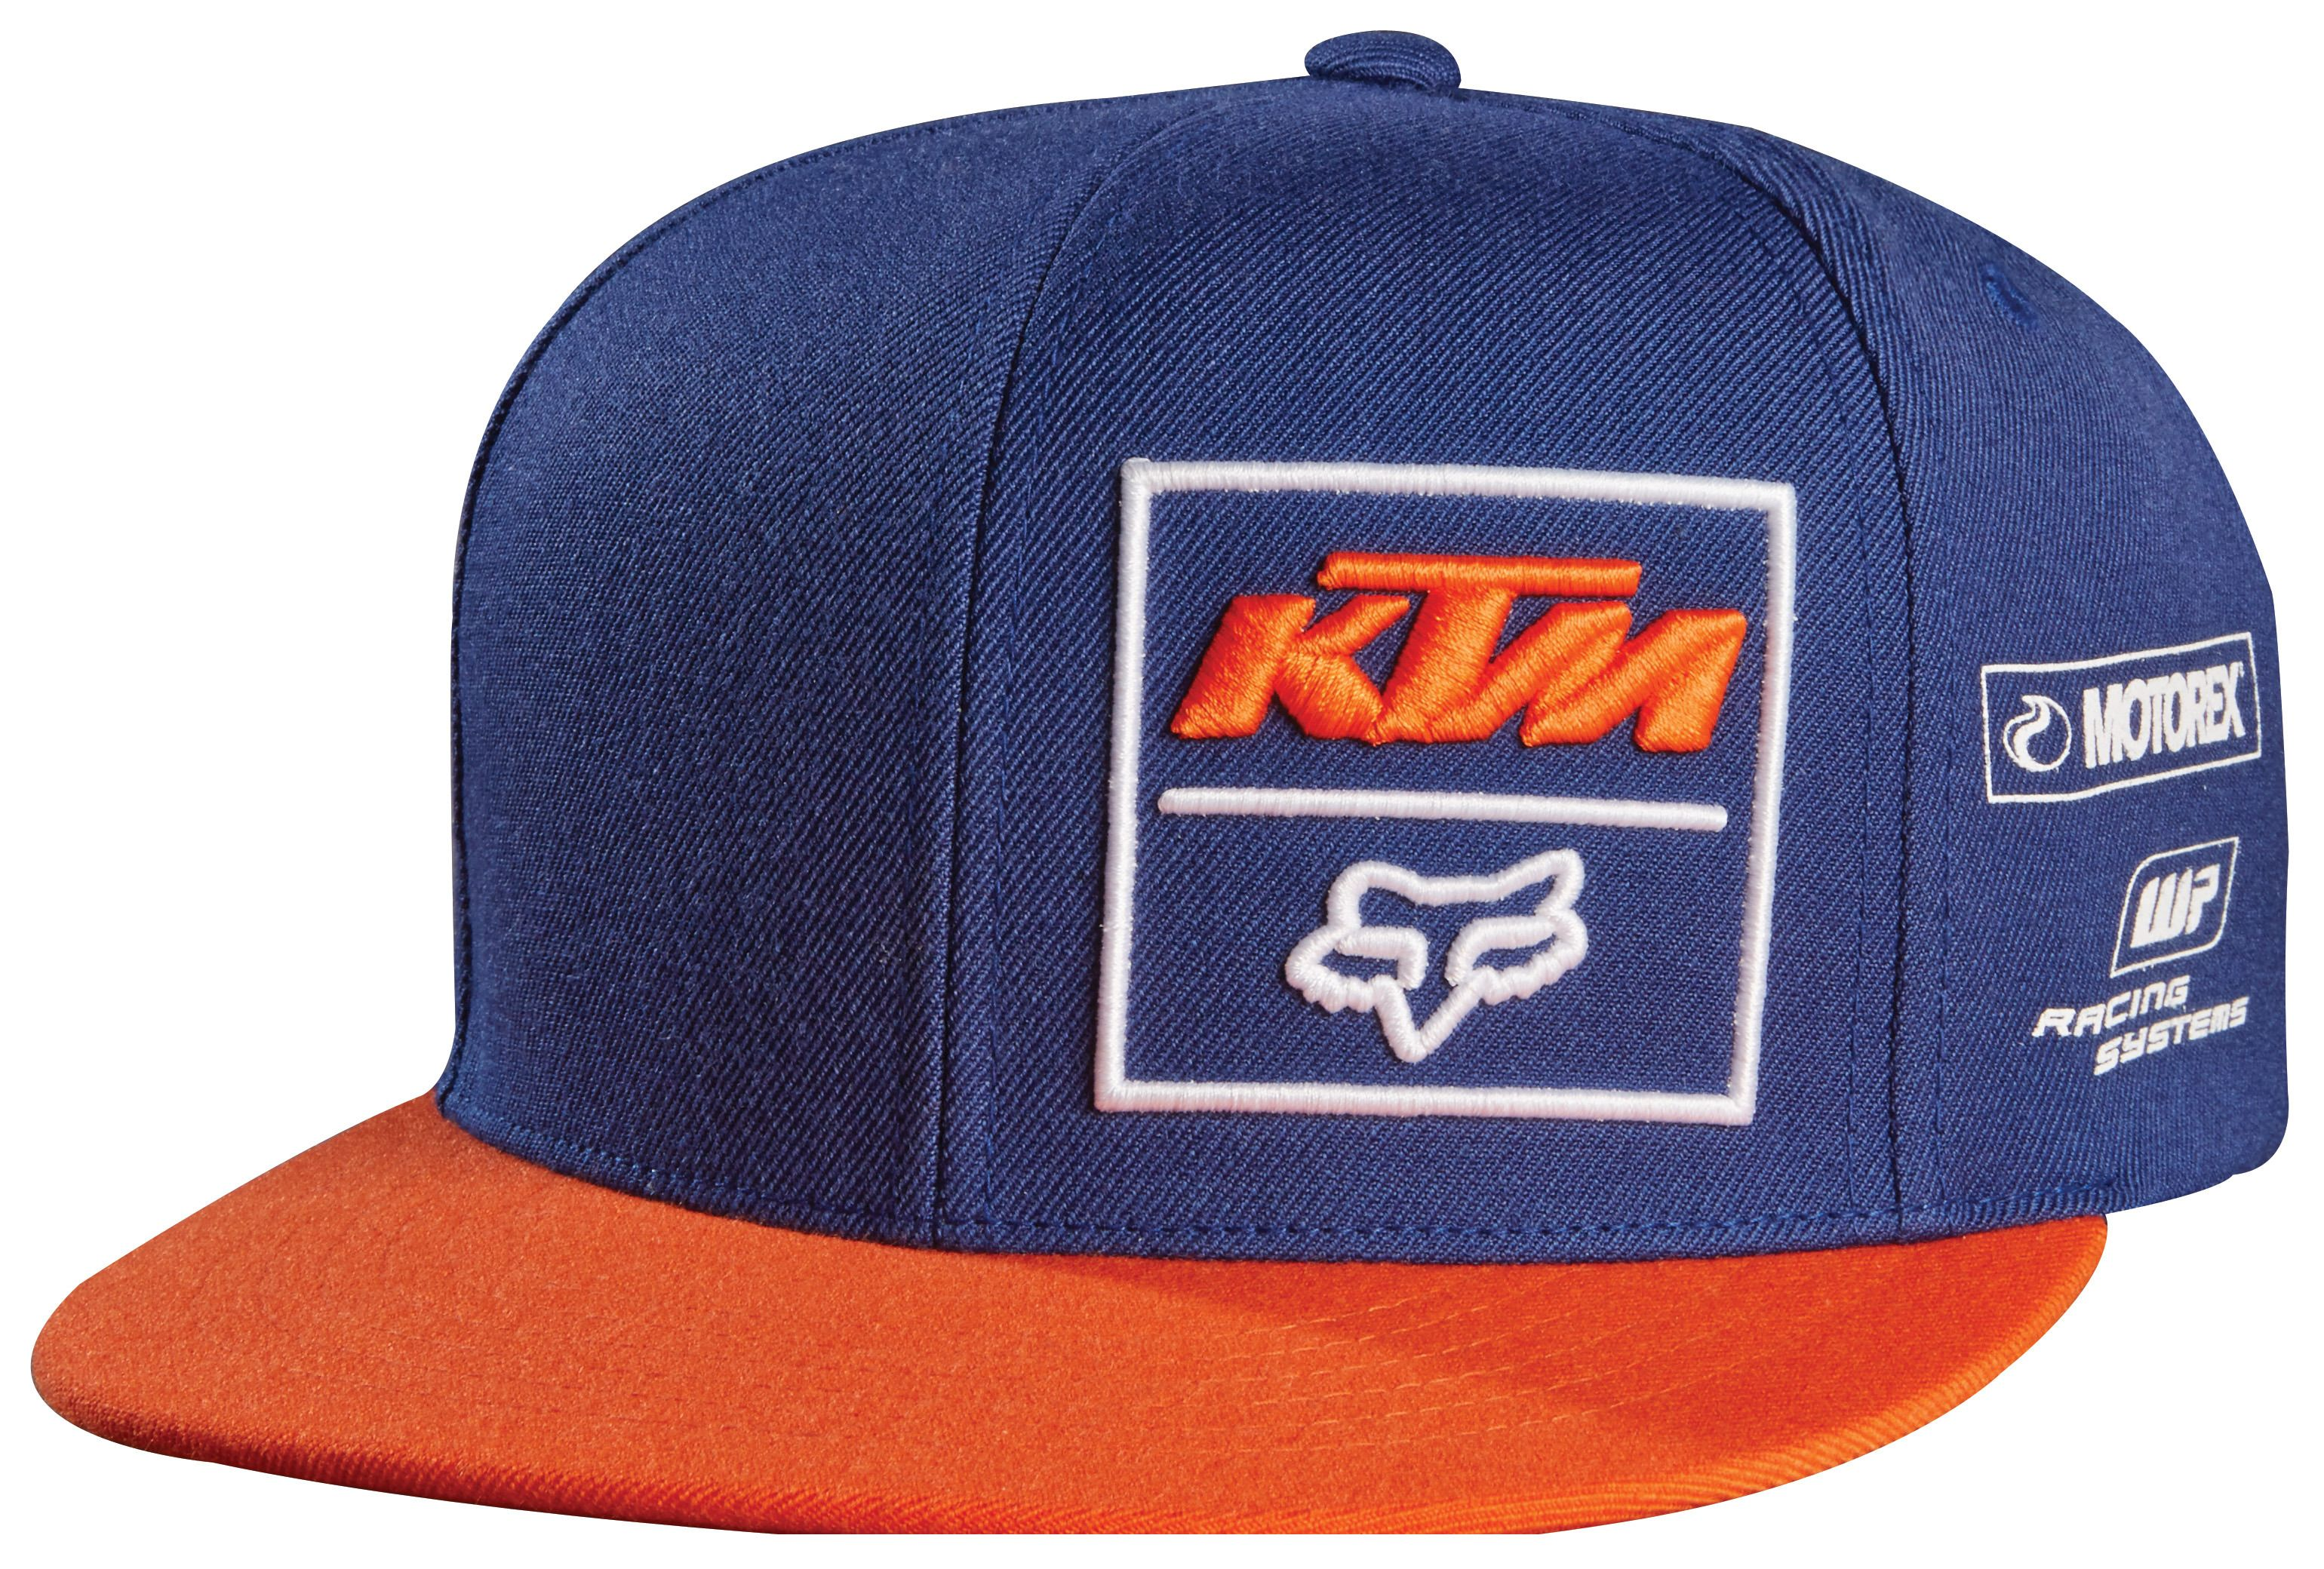 the best attitude 06eff 0fb47 ... coupon code for fox racing ktm snapback hat 12 4.20 off revzilla 07450  92b38 ...